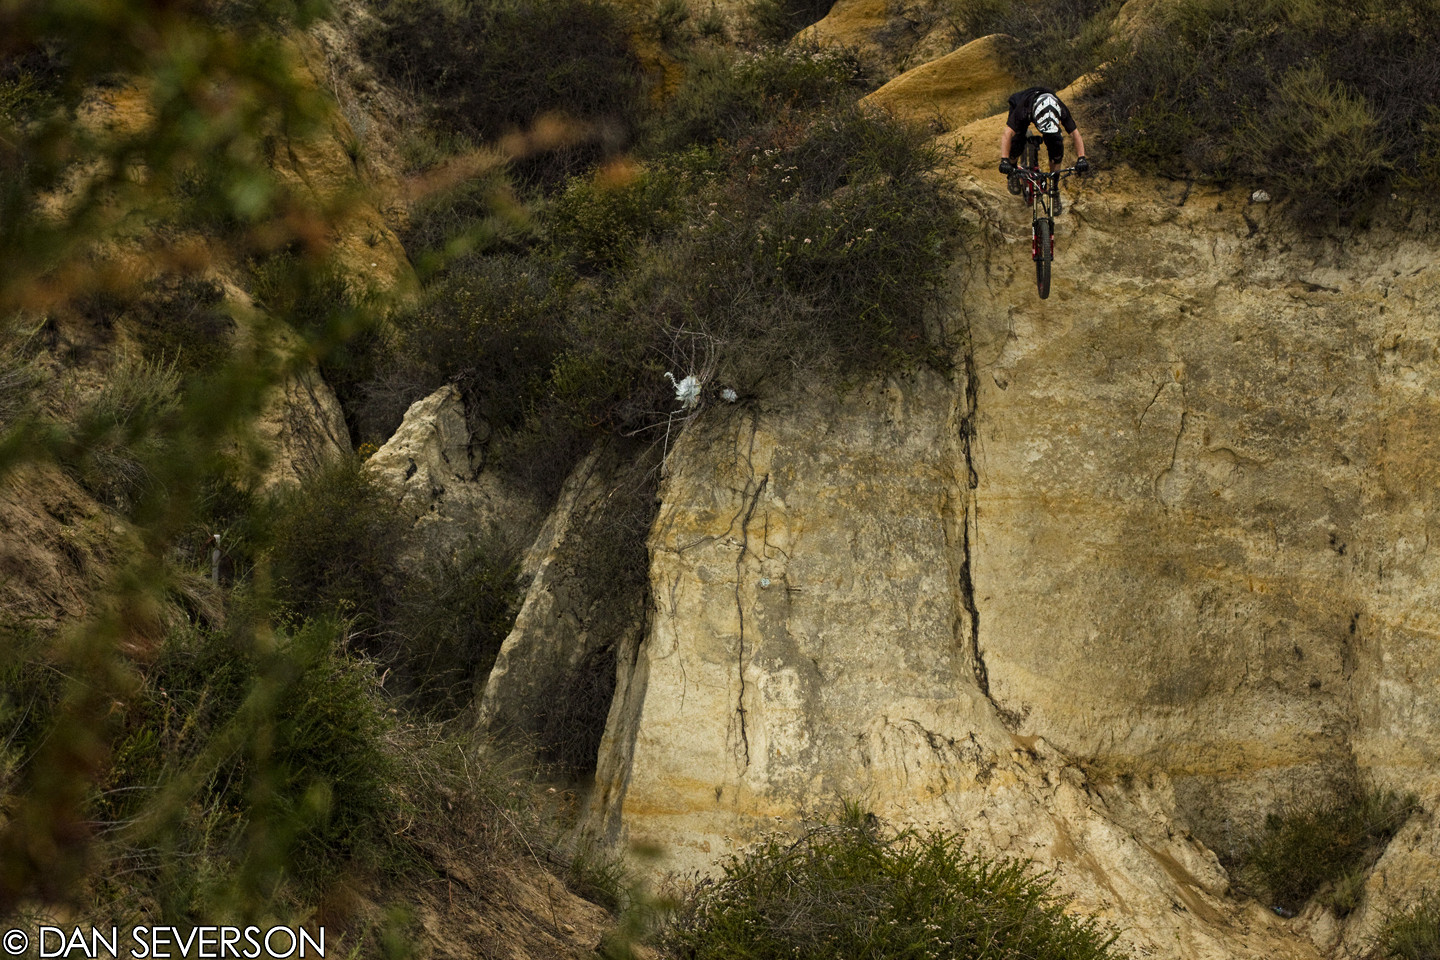 Kevin MciIvery - danseverson photo - Mountain Biking Pictures - Vital MTB